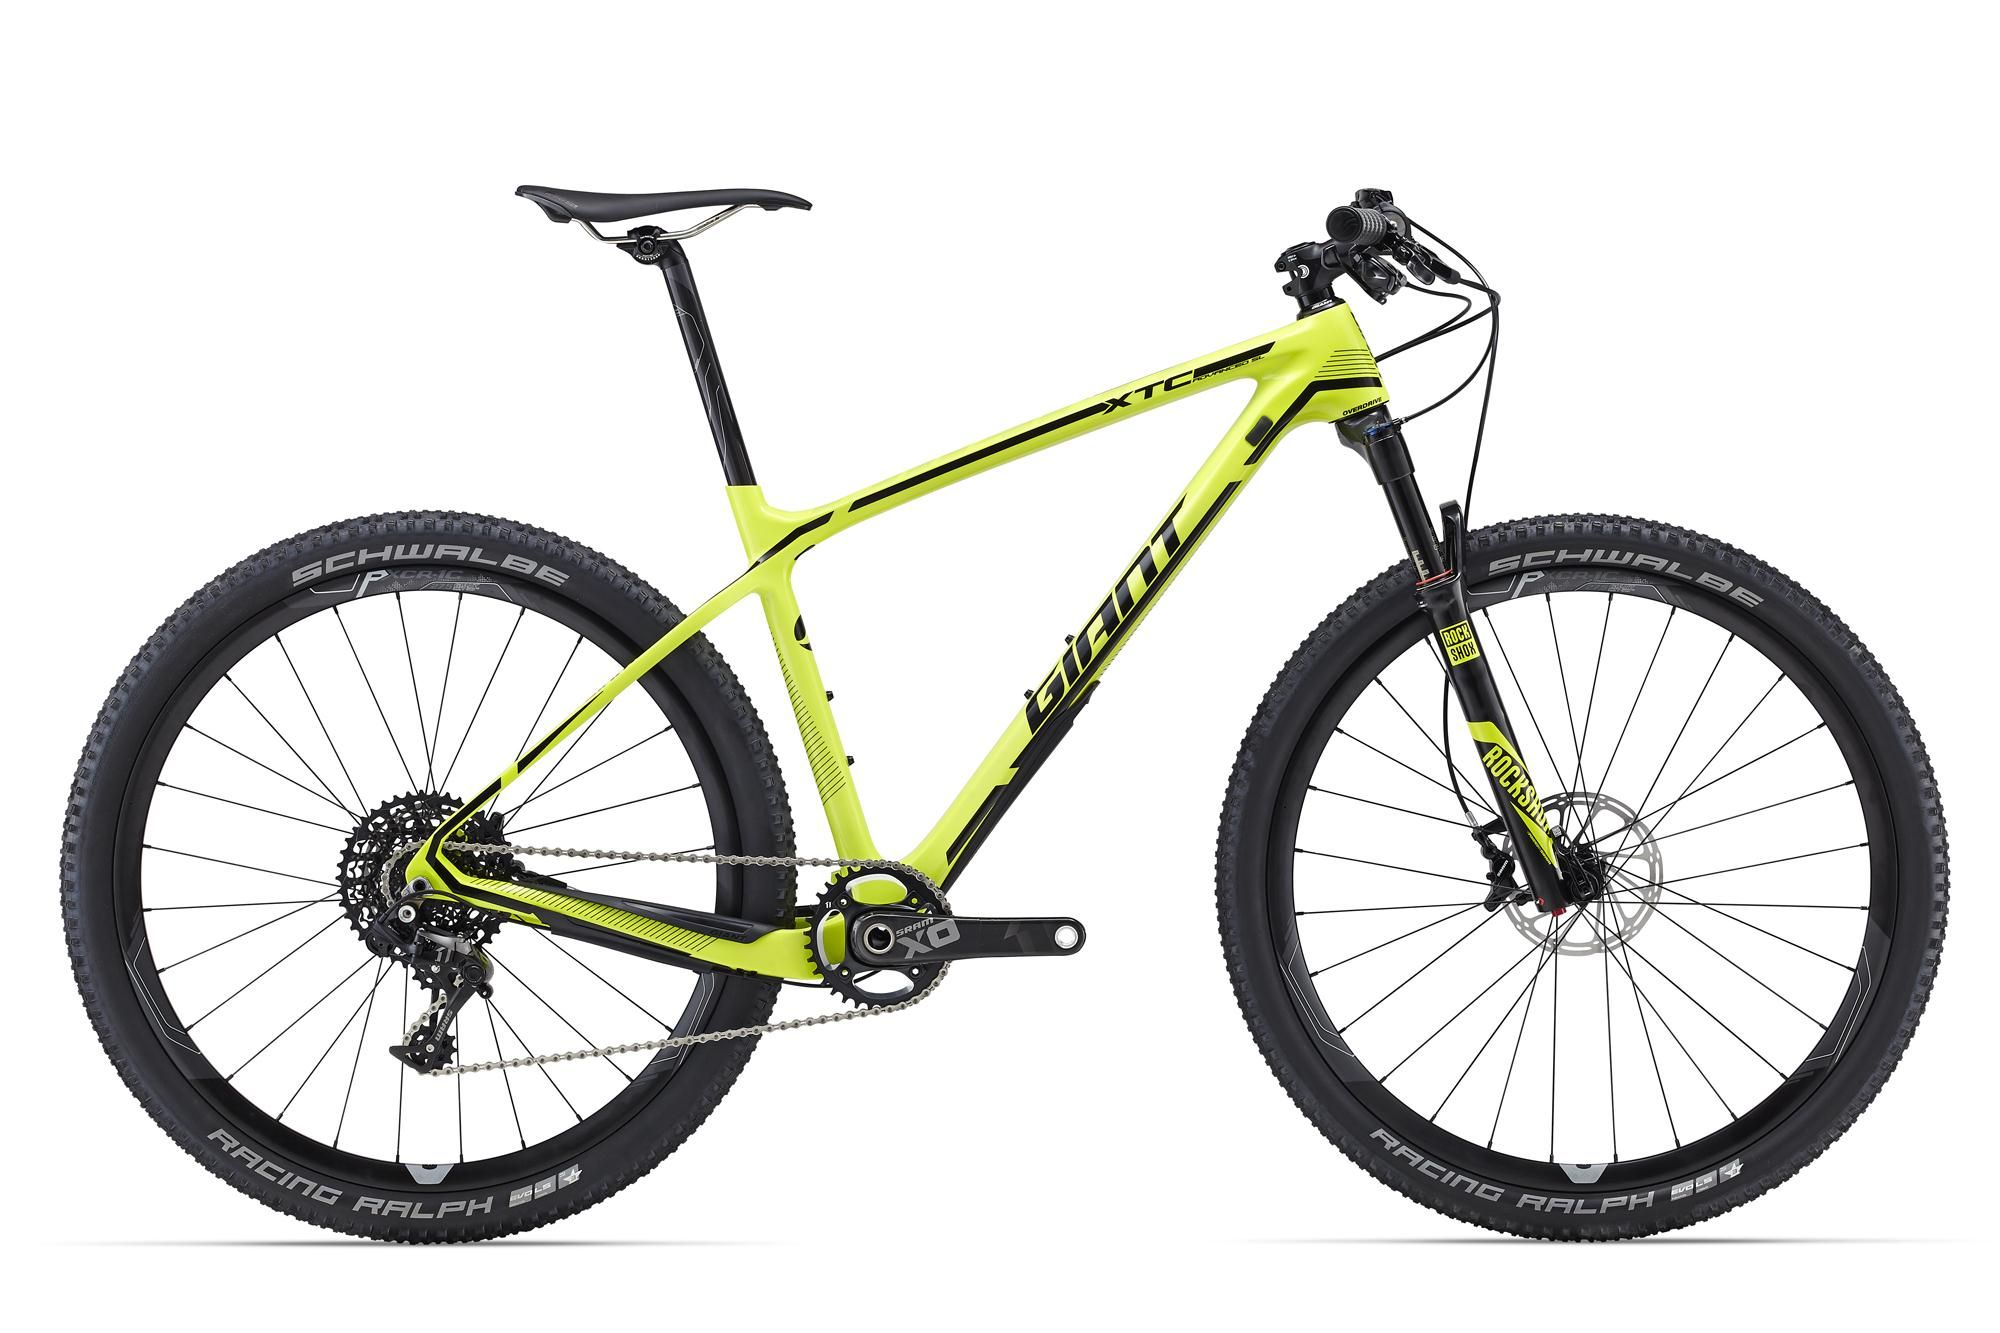 Велосипед Giant XtC Advanced SL 27.5 1 2016 велосипед giant xtc advanced 27 5 2 2016